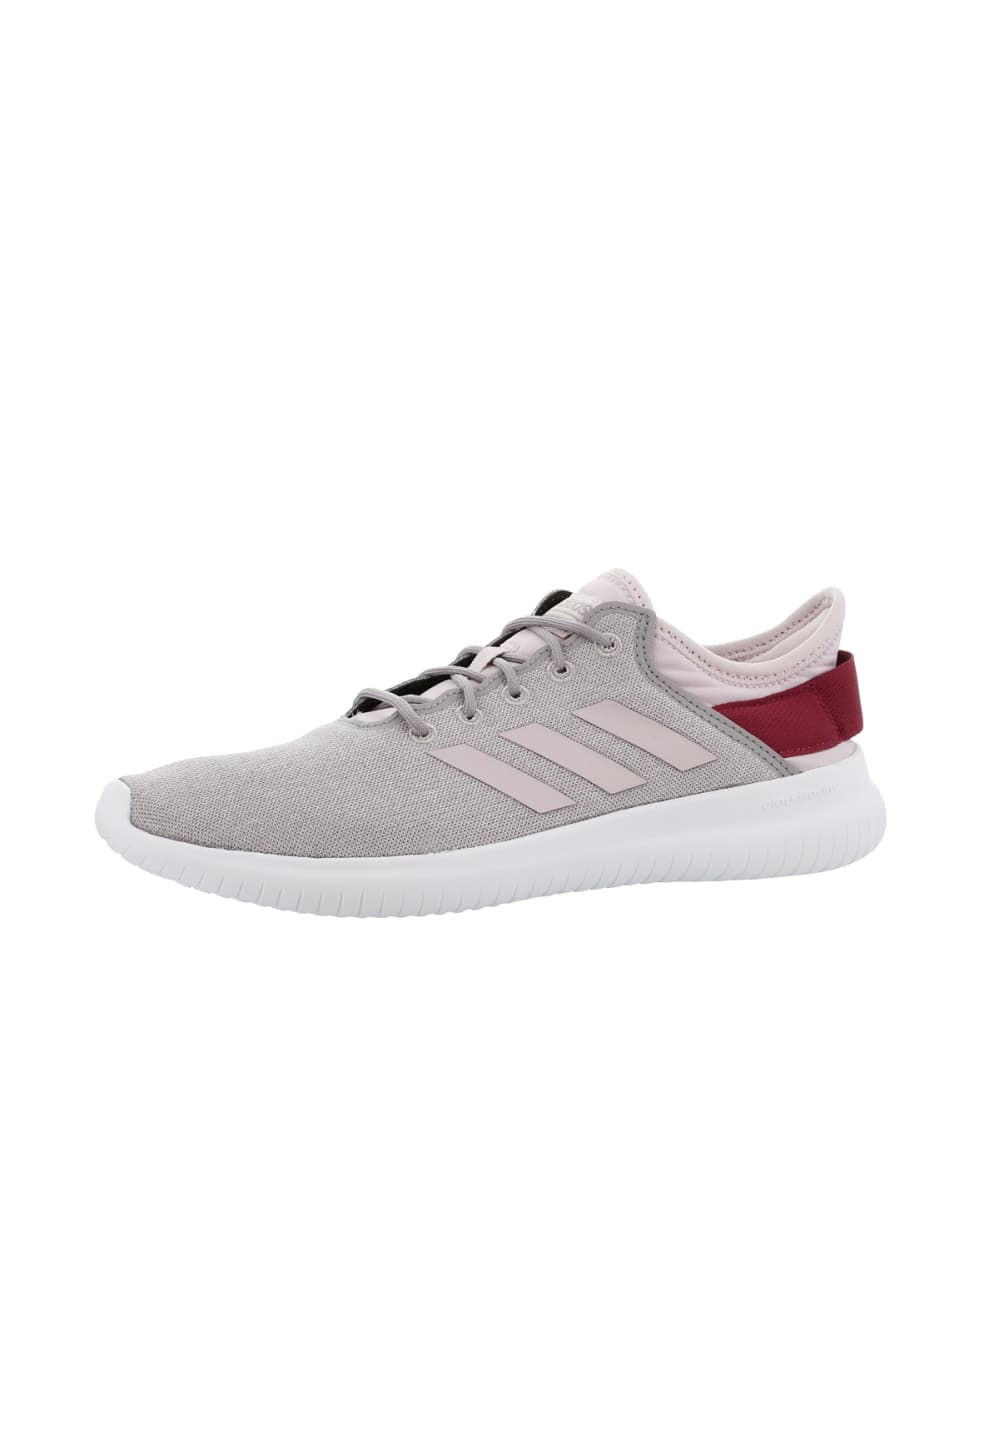 0ed5a2e4f6c Next. -60%. adidas neo. Cloudfoam QT Flex - Running shoes for Women